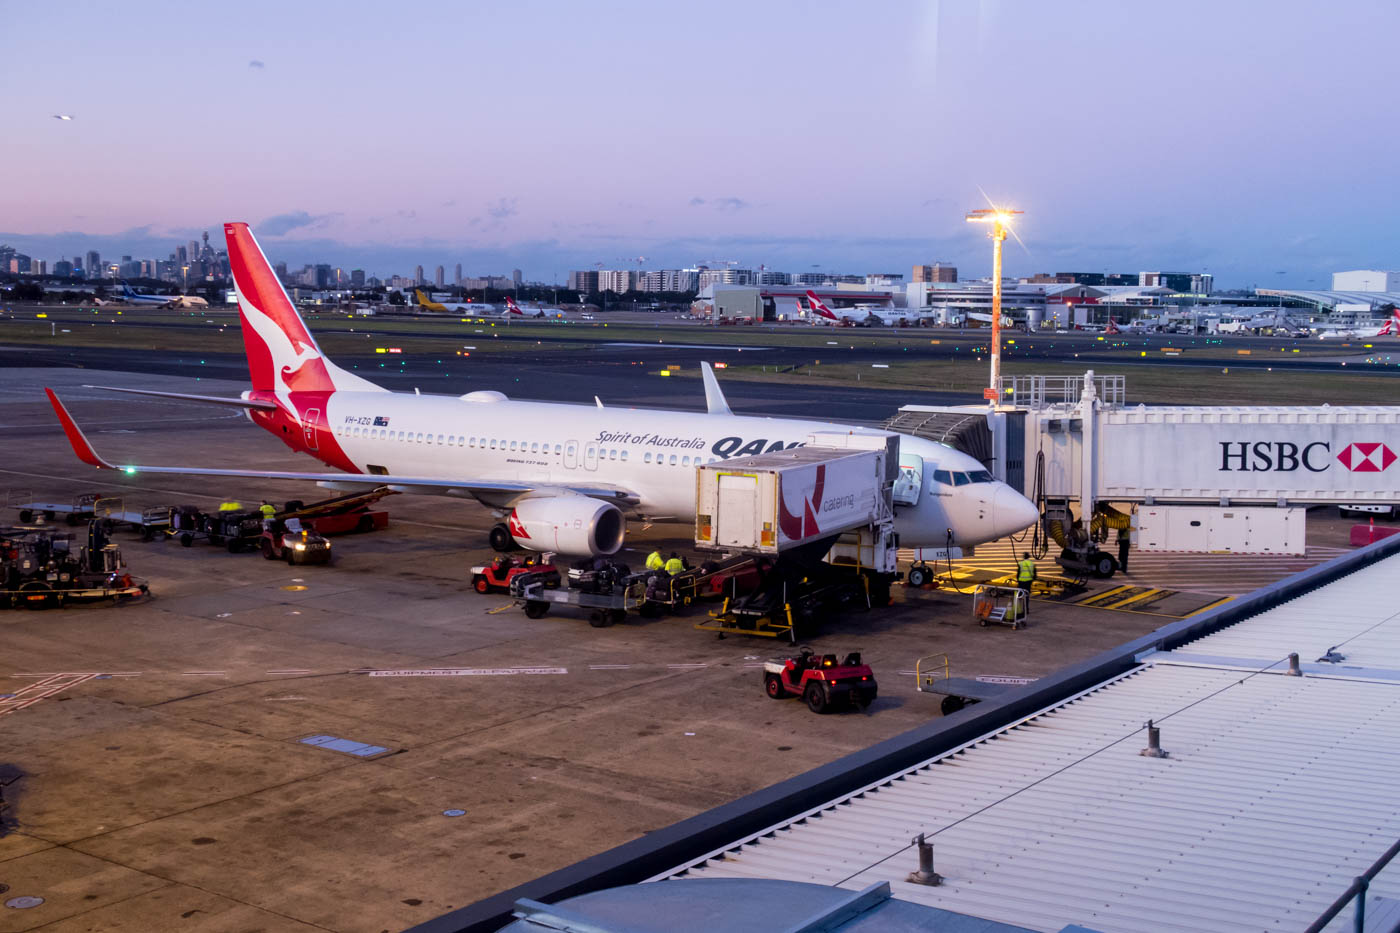 Qantas Boeing 737-800 at Sydney Airport